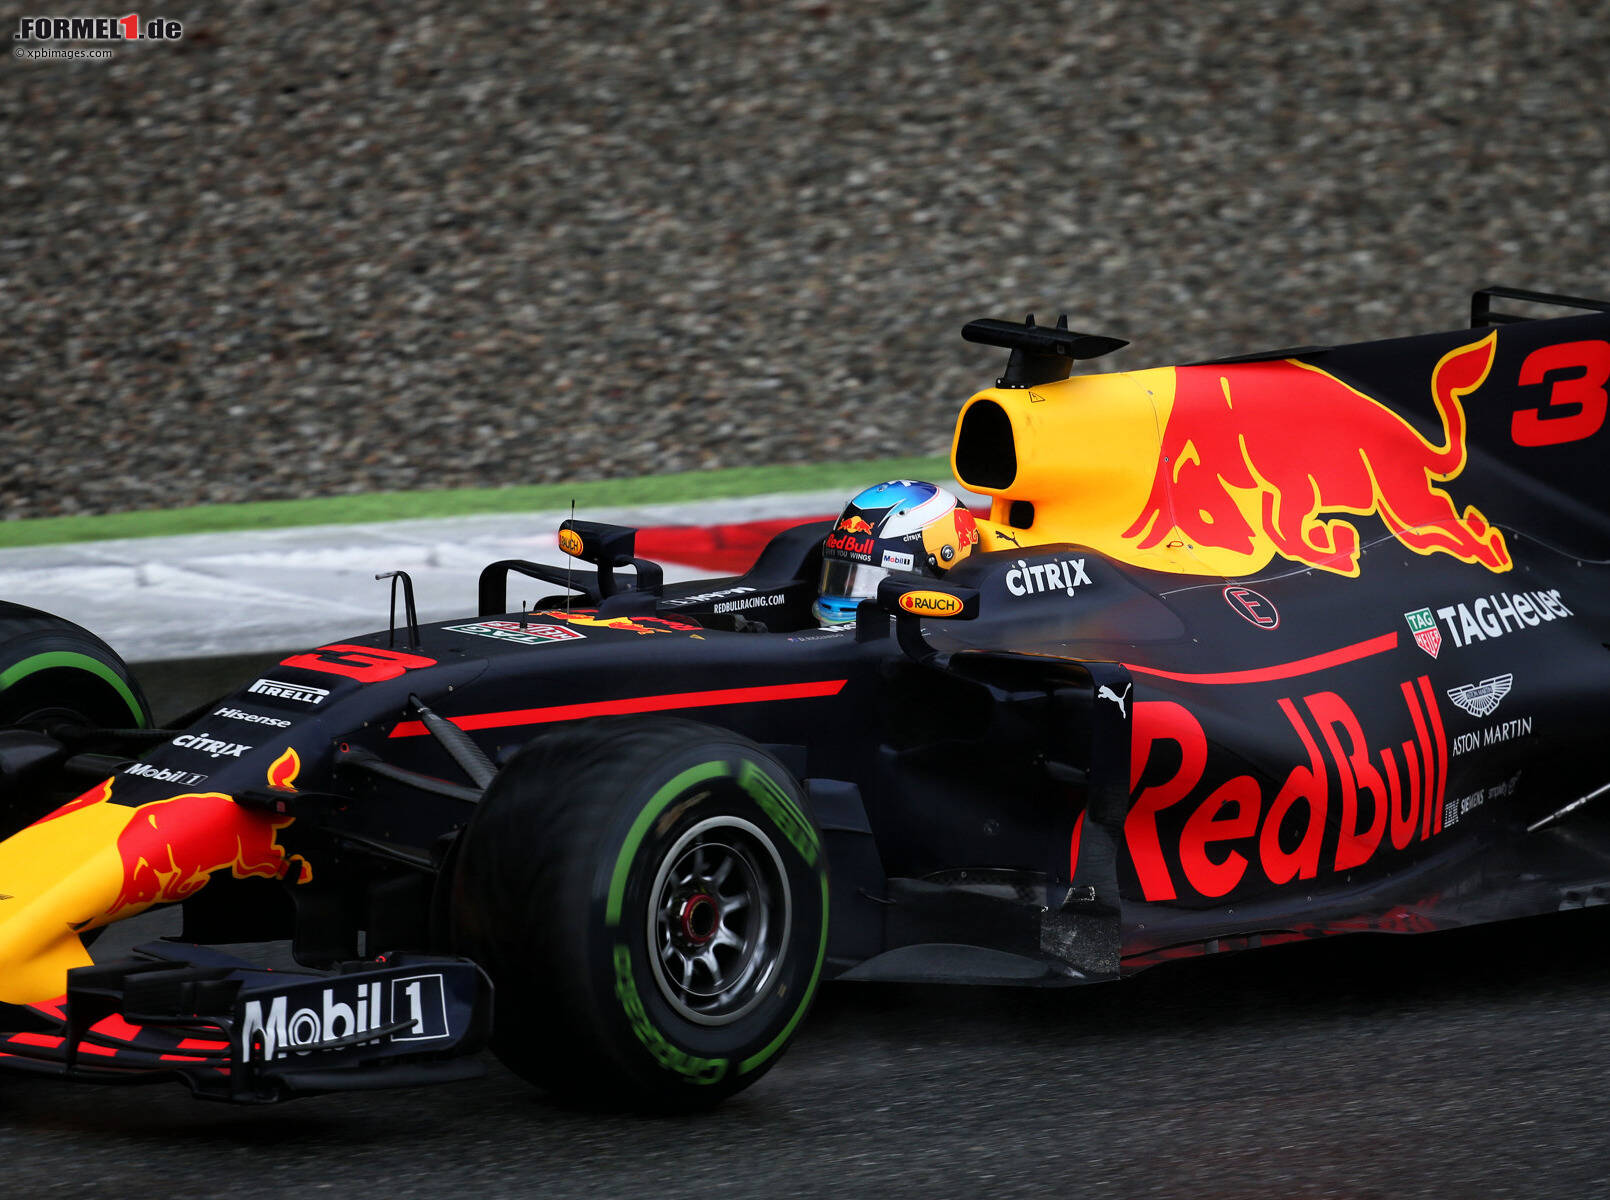 formel 1 2018 red bull muss zulegen um ricciardo zu halten. Black Bedroom Furniture Sets. Home Design Ideas